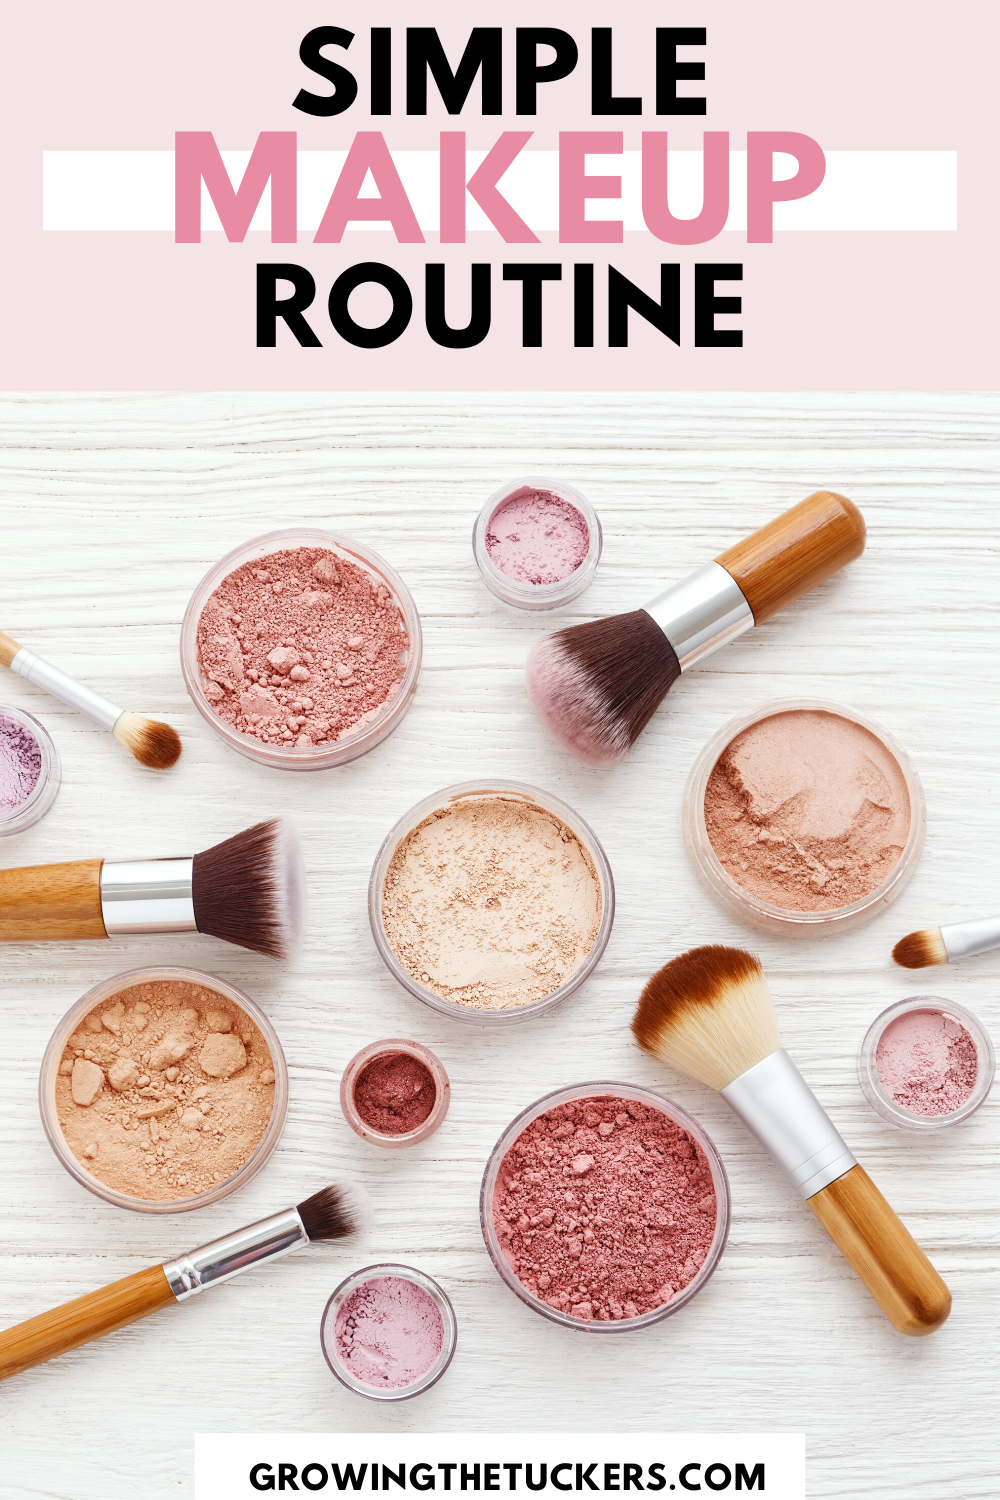 Simple Makeup Routine in 2020 Non toxic makeup, Skin